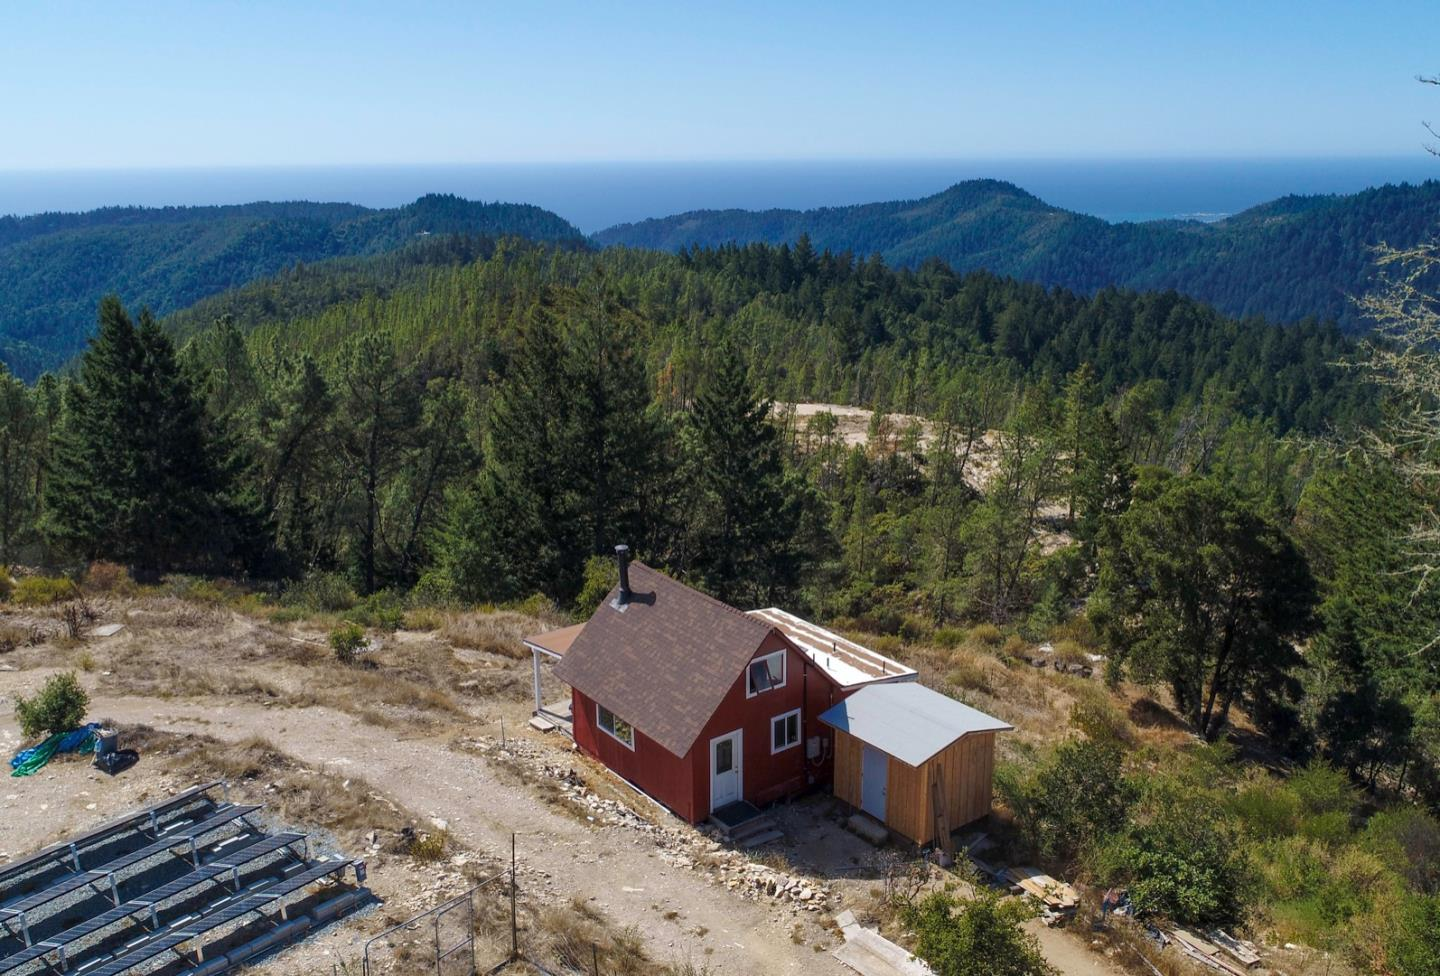 Last Chance Road weekend getaway cabin, with extensive ocean views and privacy. Rustic-chic off-grid cabin sits prominently on almost 5 acre lot. 1 bedroom plus sleeping loft. South facing exposure with lots of sun. Rarely do properties become available in this area. Last Chance Road is a unique and eclectic community with a rich history, which offers many possibilities. Recent upgrades include new $75k solar system, just installed with permits, new flooring, paint, kitchen, utility shed to house battery storage. Outstanding sunsets & stargazing, Last Chance road leads from the western boundary of Big Basin State Park, It starts out as a ridge road between Wadell Creek and Scott Creek, the fire road brings you up to the peaks. Property is on Pine Mountain, off Last Chance road, in a chaparral like micro climate, above the fog and the majestic redwood trees. 7 miles on a fire road, approximately 30 minutes from Highway 1. 4wd is recommended.